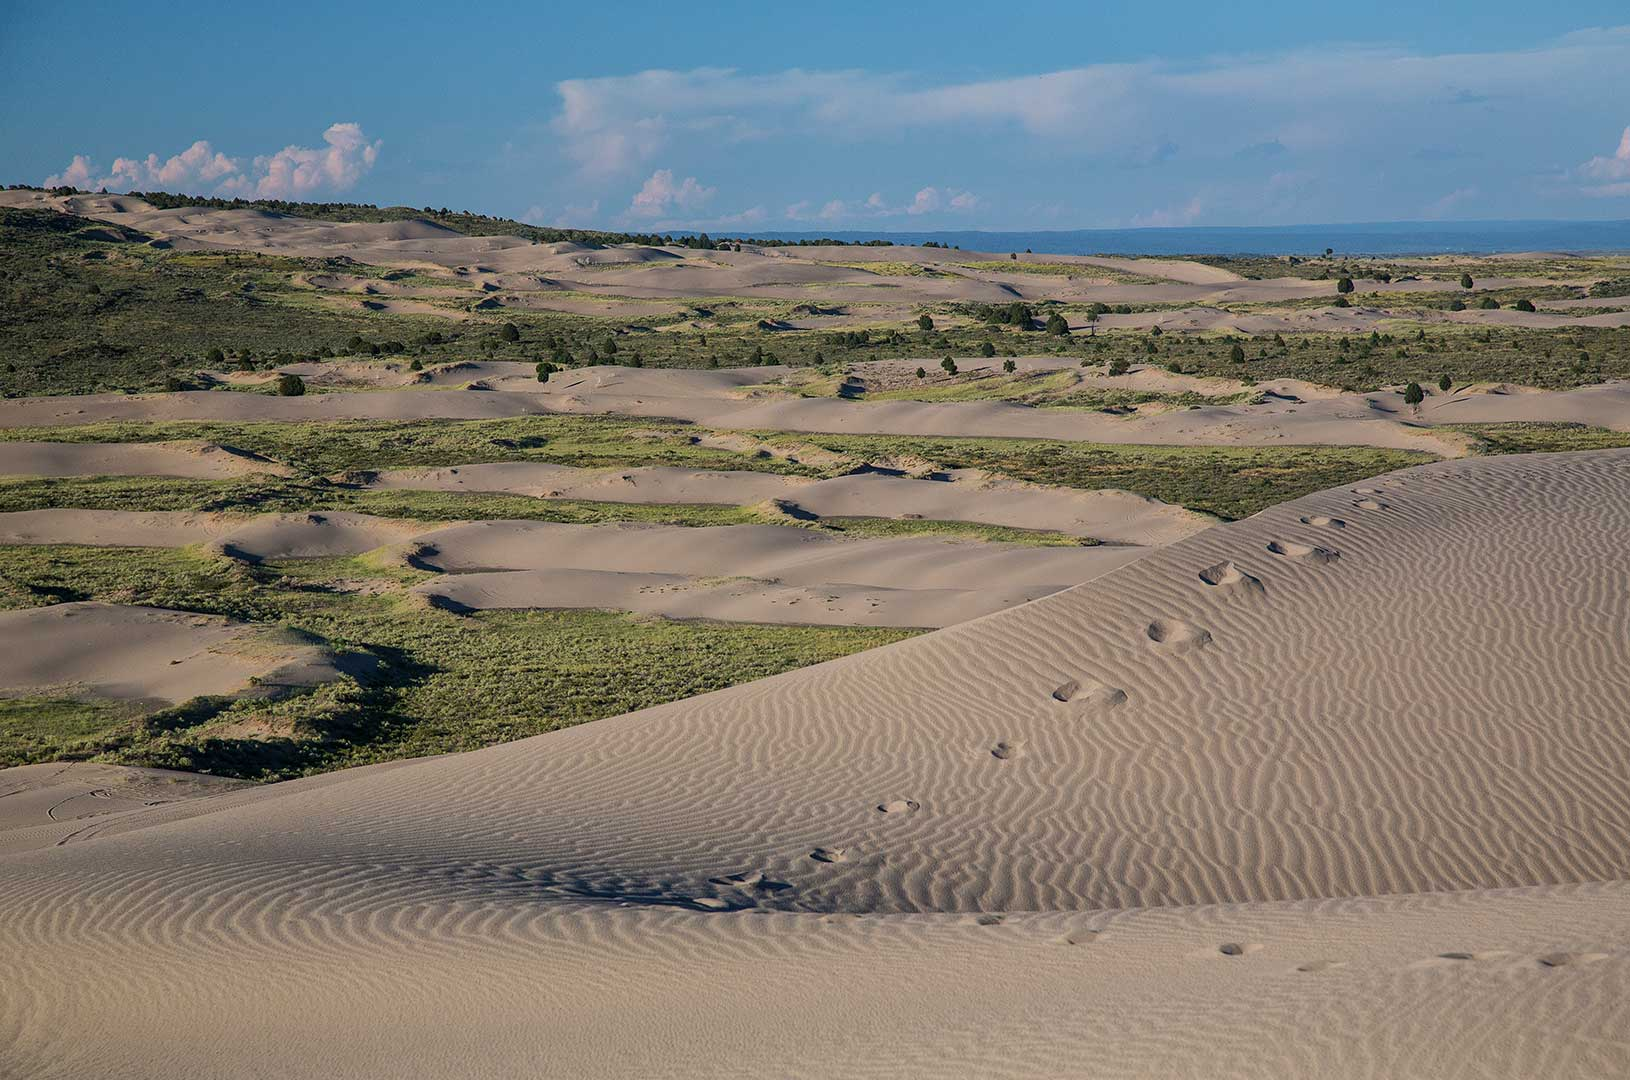 St Anthony Sand Dunes with visible footprints in the sand